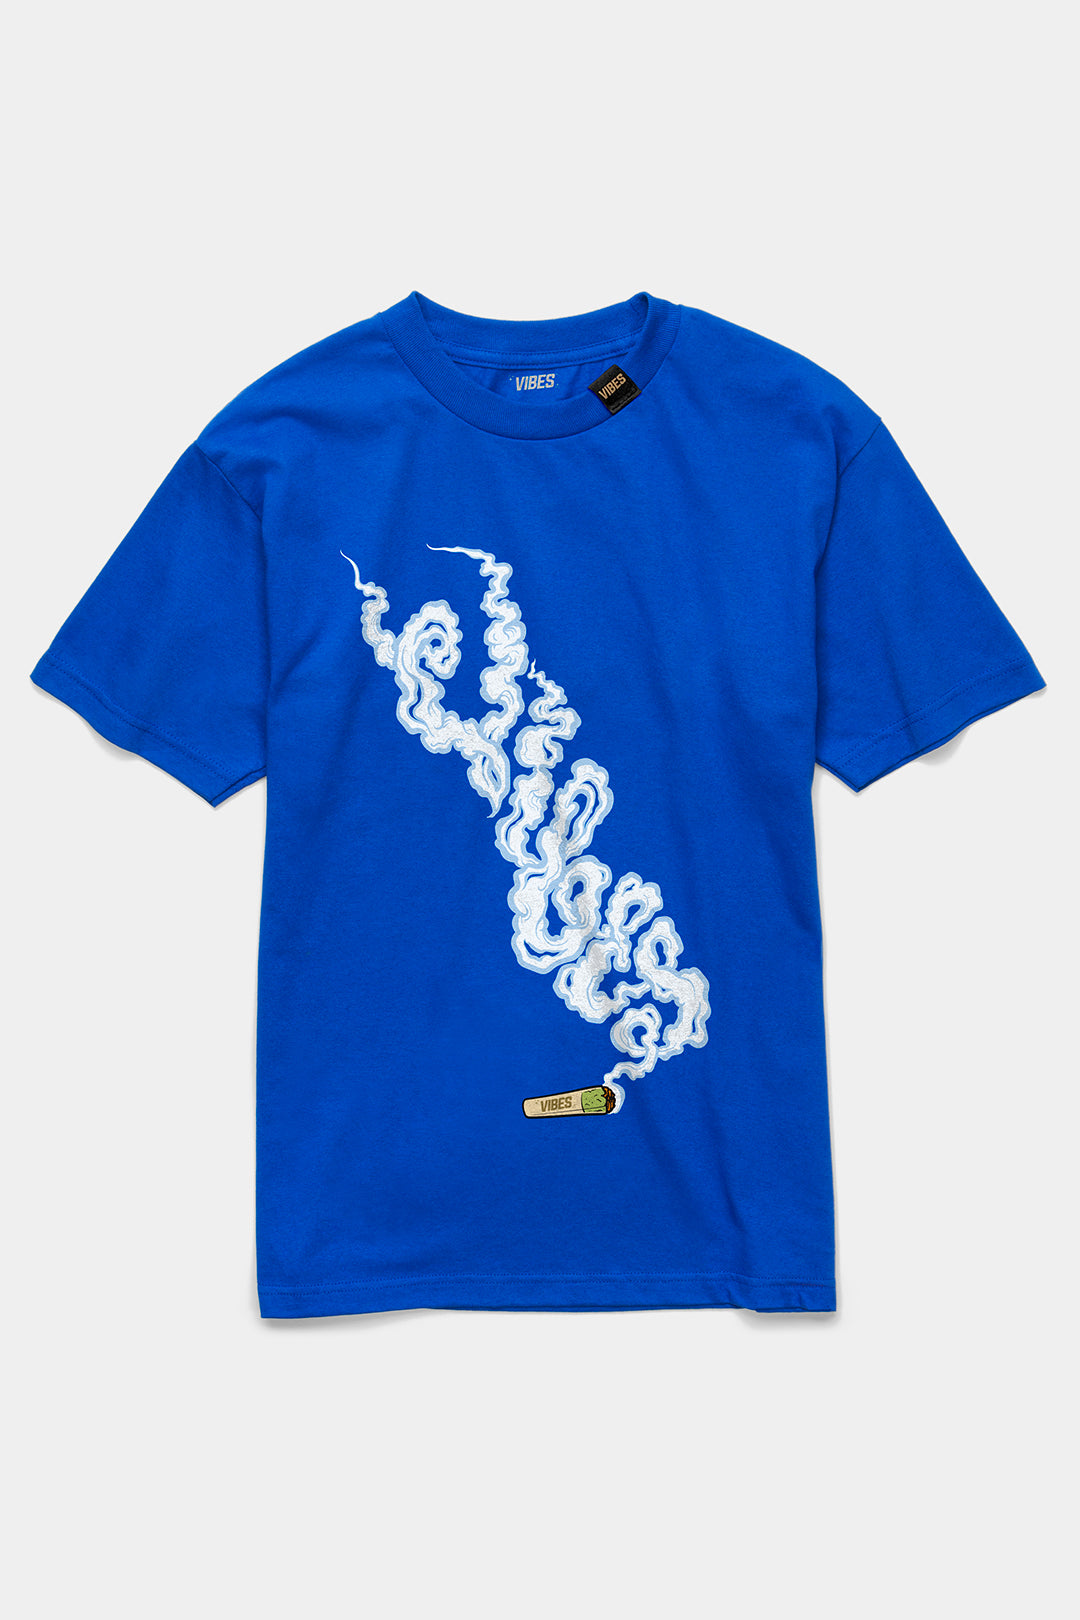 VIBES Joint Cloud Collection Blue T-Shirt